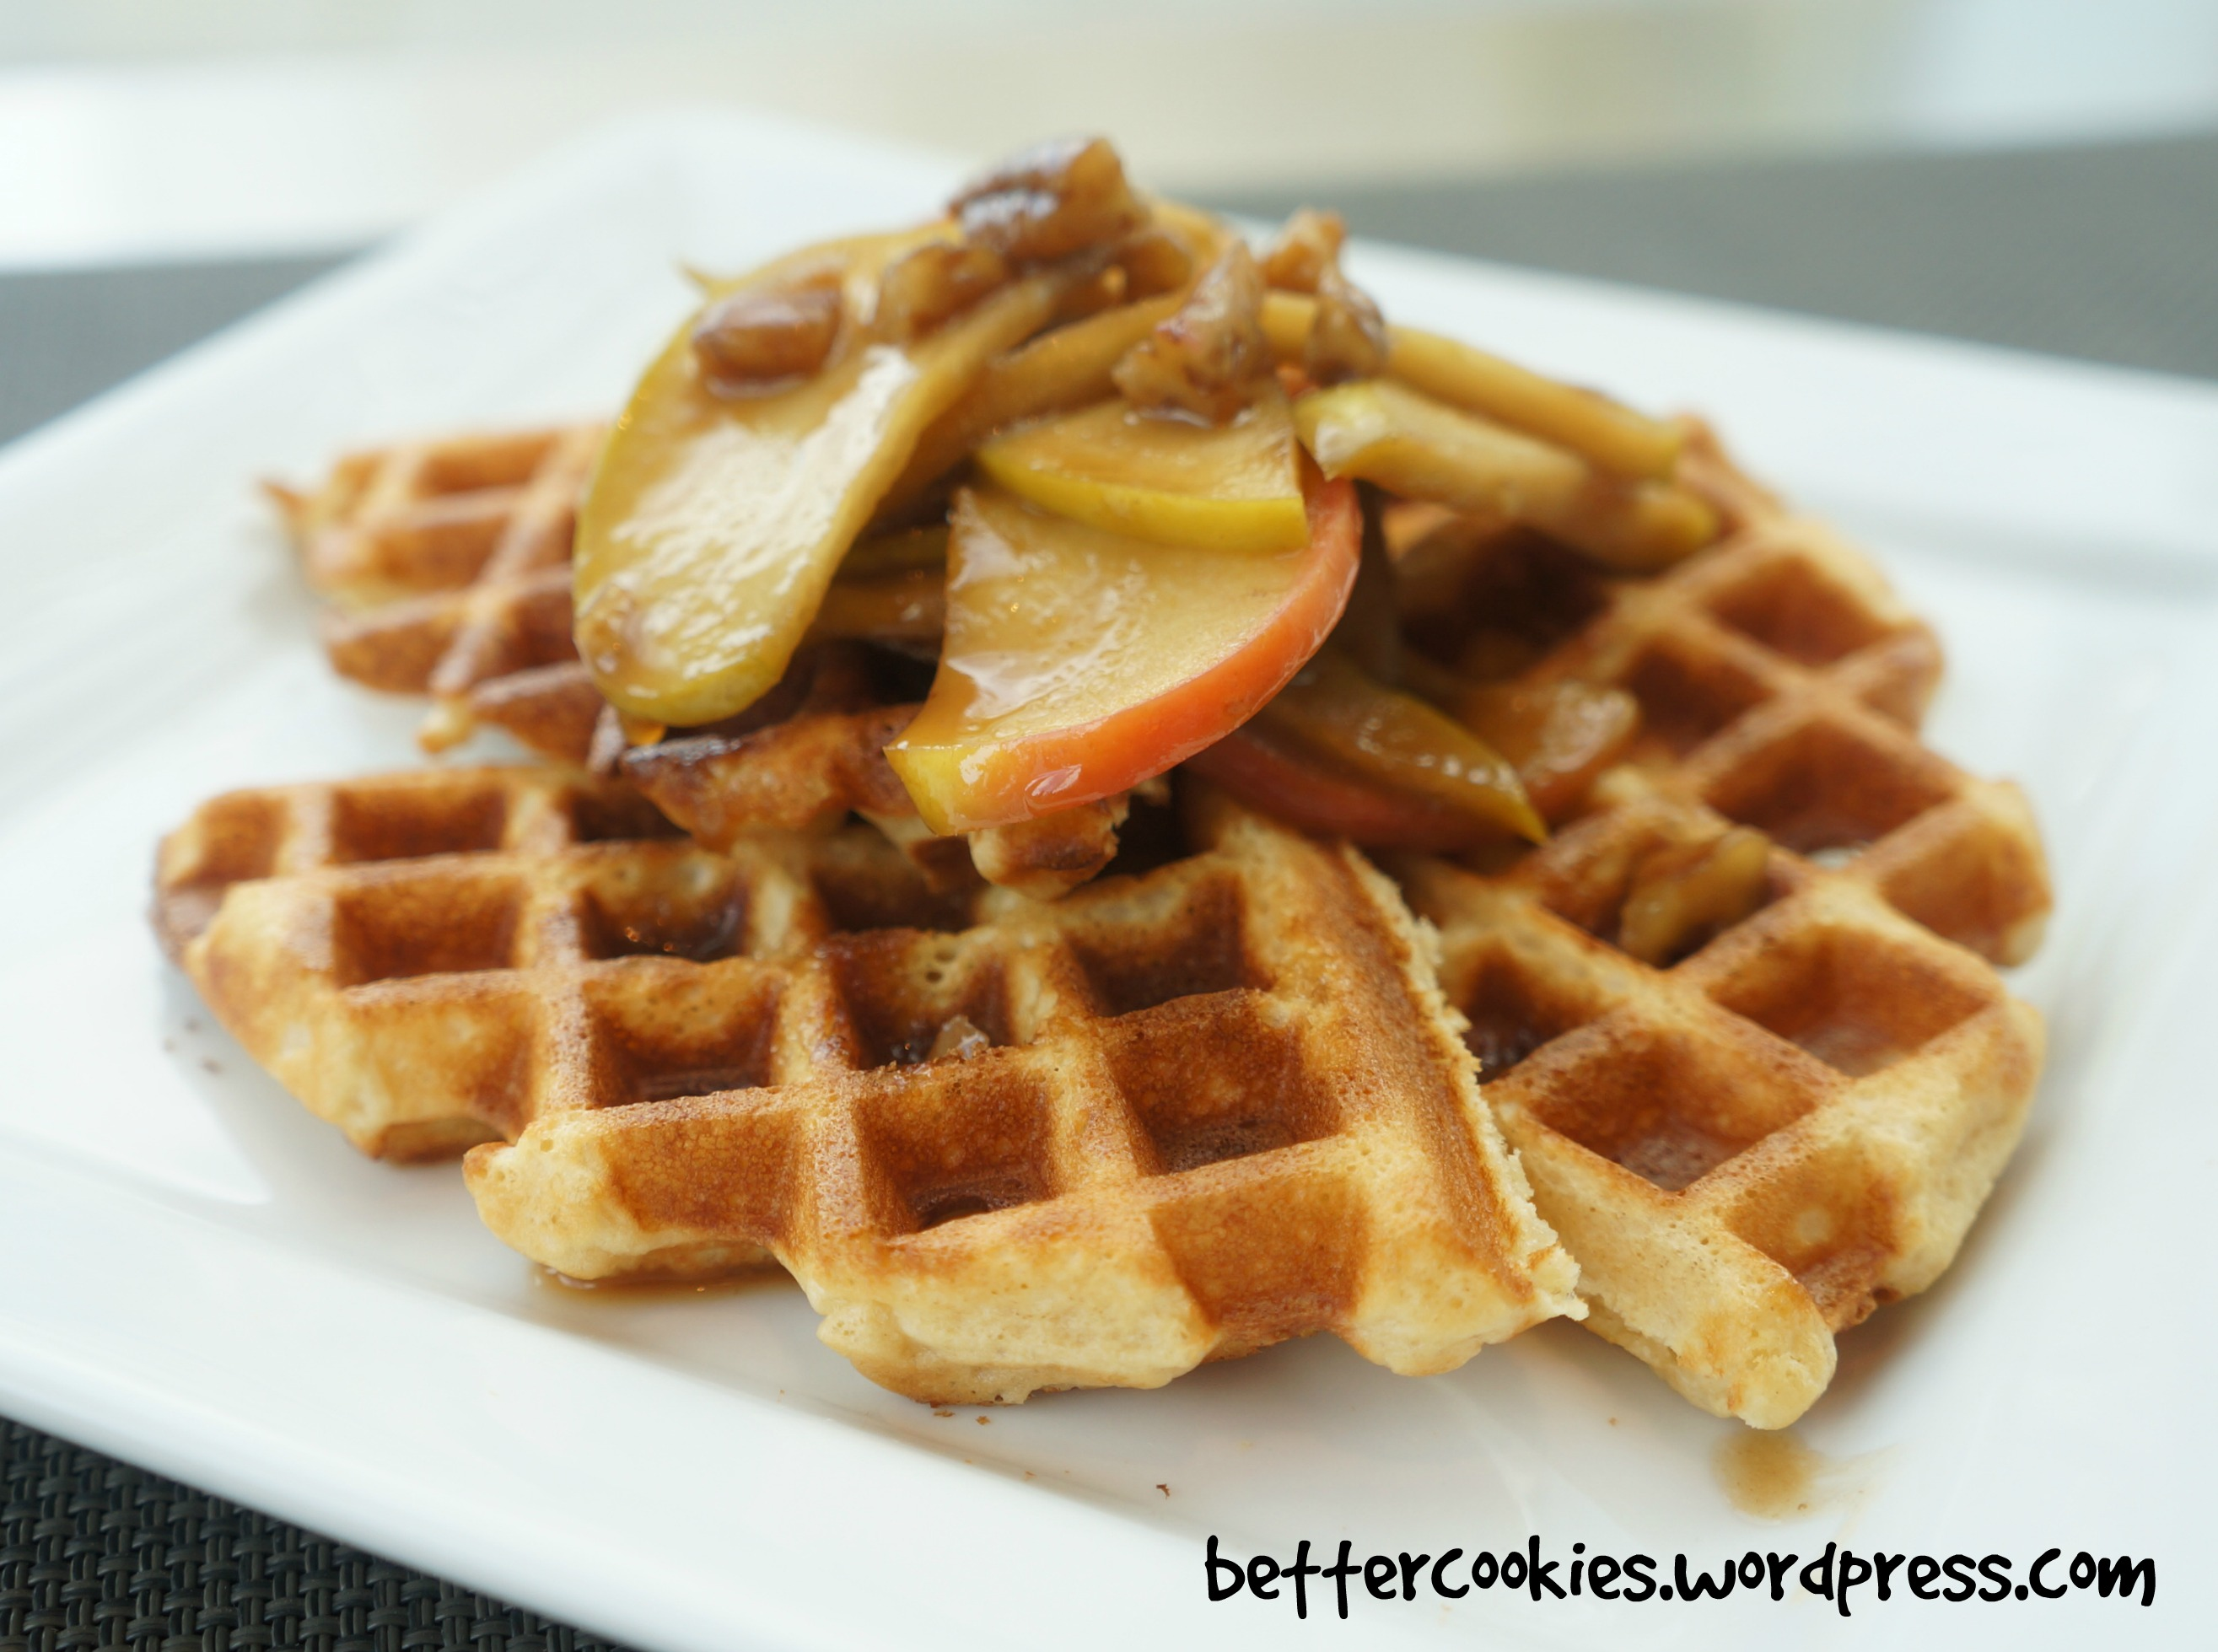 Sour Cream Waffles with Apples and Syrup